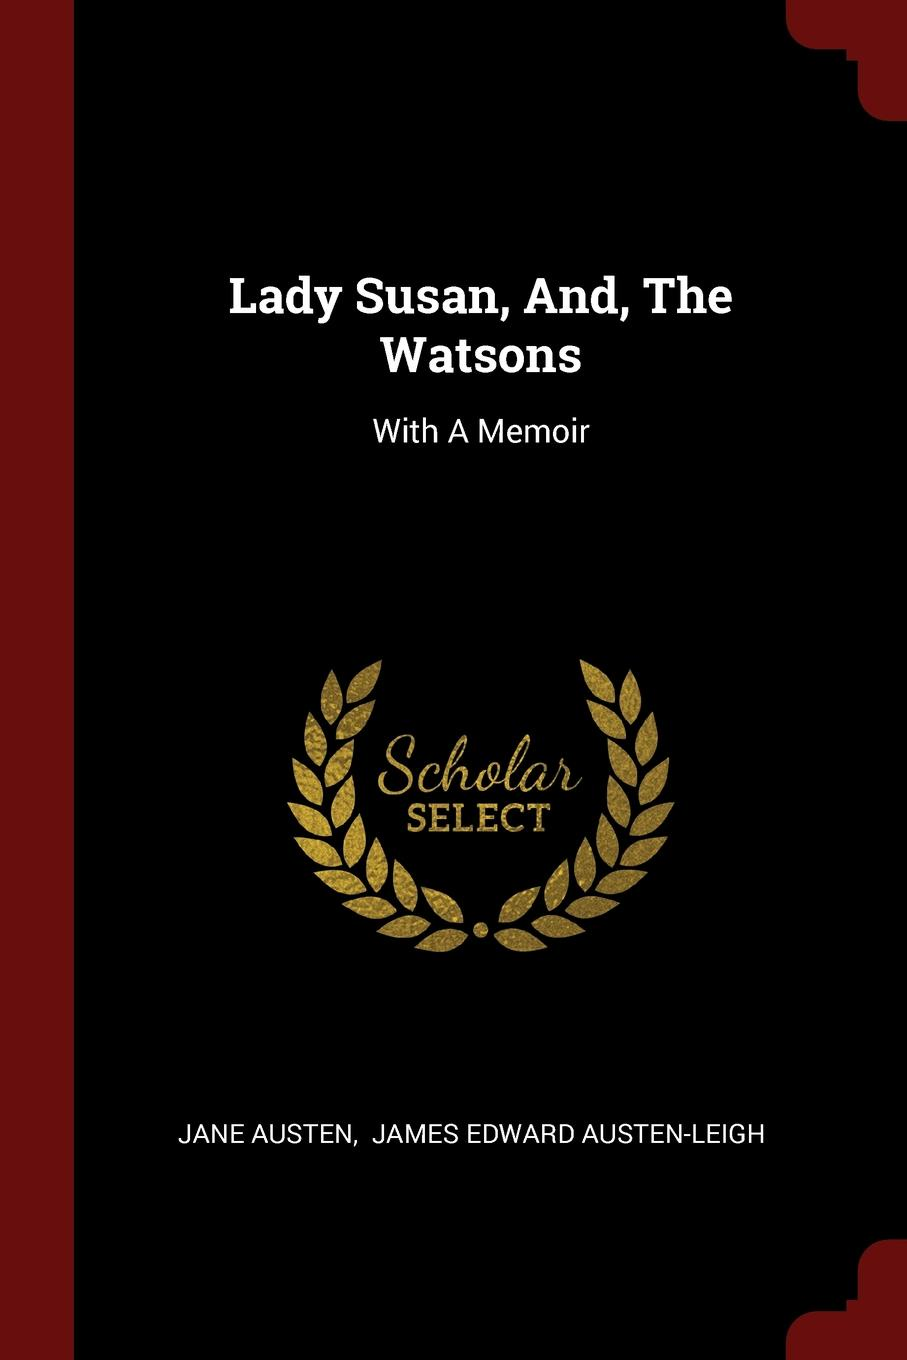 Jane Austen Lady Susan, And, The Watsons. With A Memoir